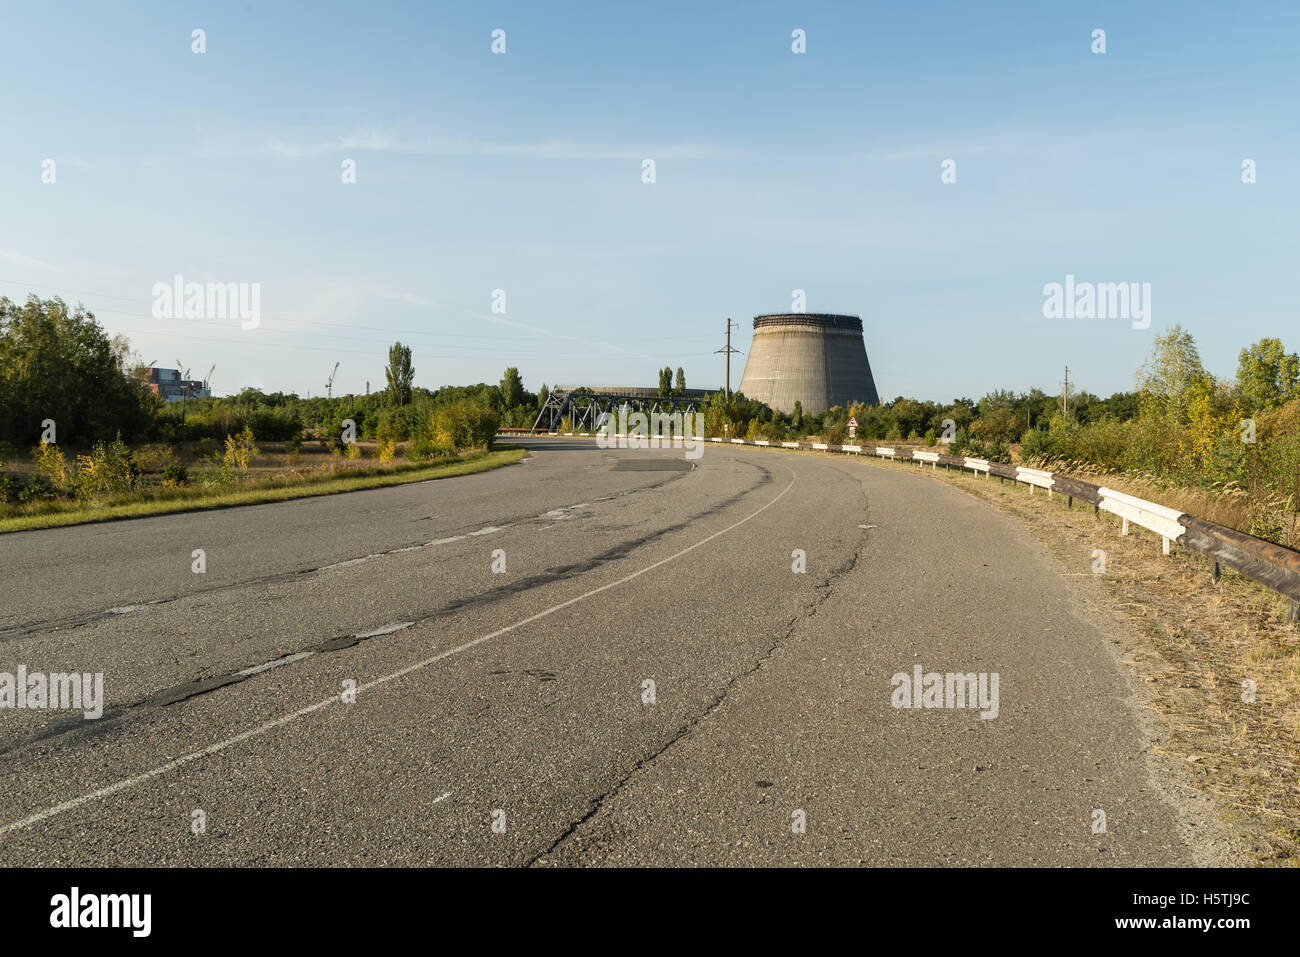 Unfinished tower of reactor 5 what were left unfinished after nuclear disaster. - Stock Image